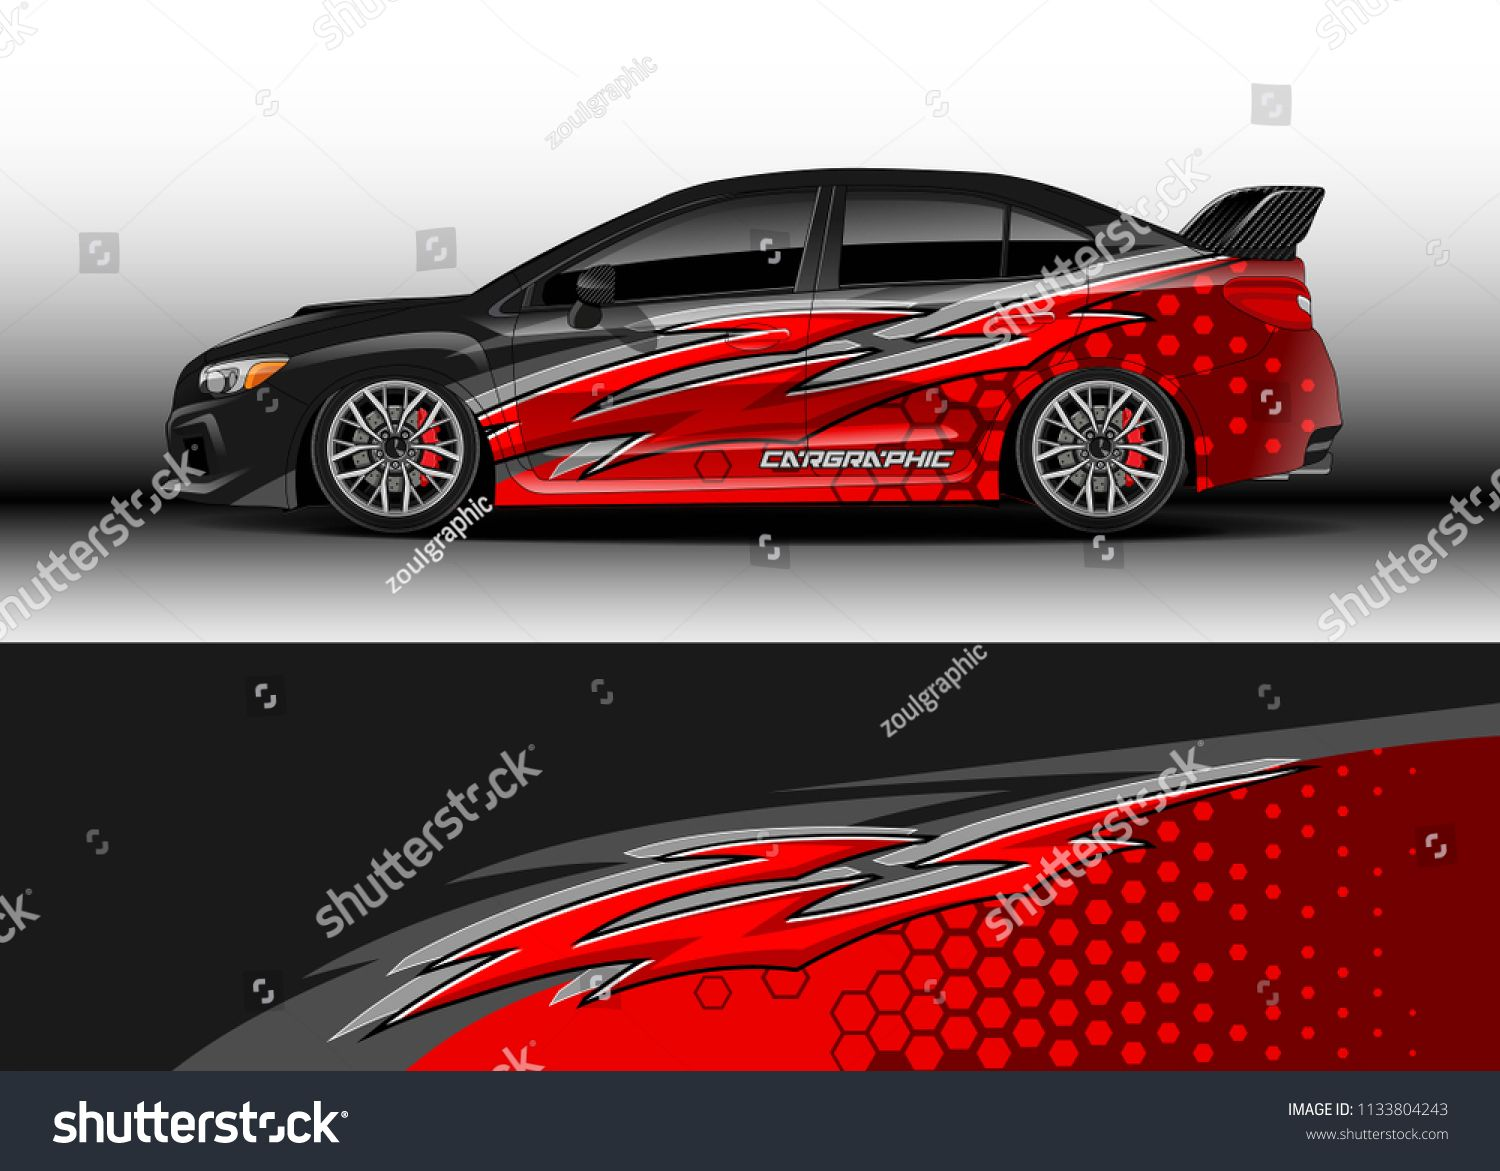 Car decal graphic vector wrap vinyl sticker graphic abstract stripe designs for race and drift livery car